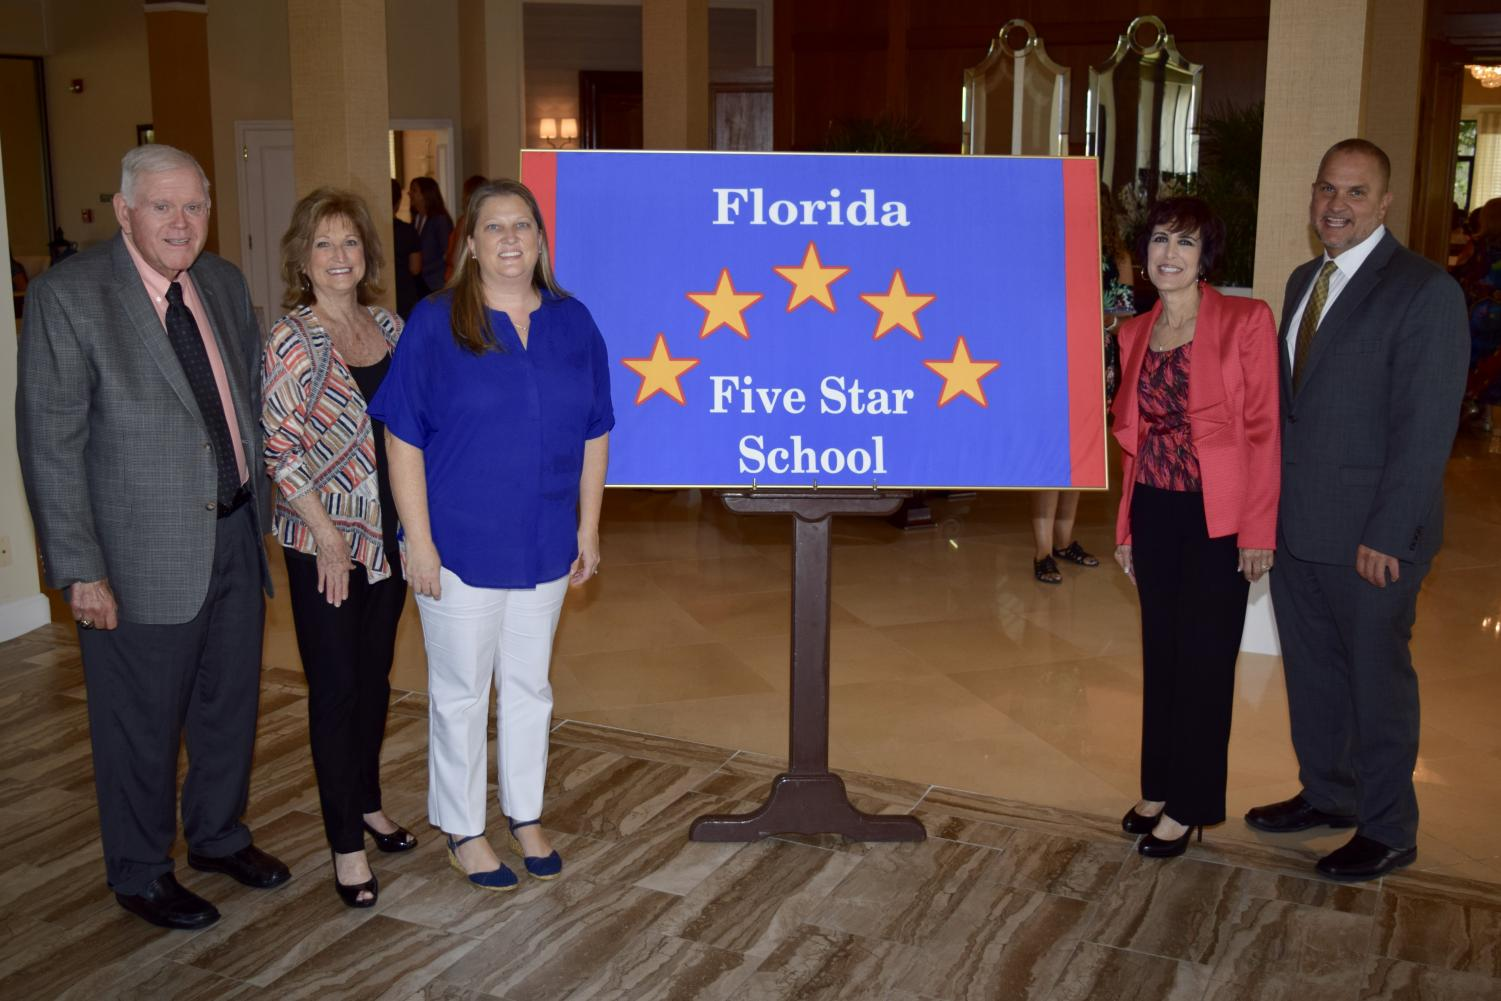 JOB WELL DONE: Nurse Blair accepted deserved recognition from Palm Beach County School Board members Oct. 24 on behalf of the Inlet Grove team.